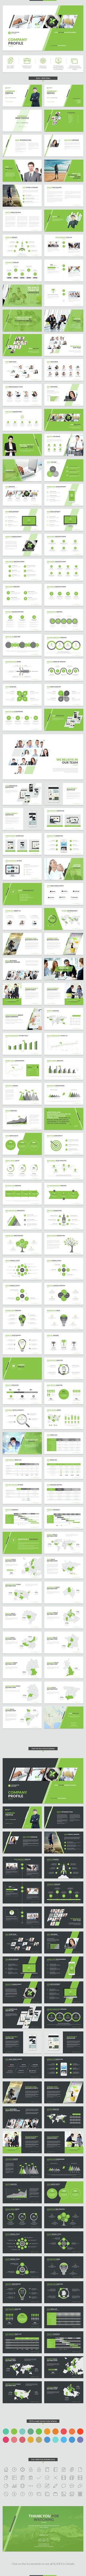 Company Profile PowerPoint Presentation Template. Download here: http://graphicriver.net/item/company-profile-powerpoint-template/15182669?ref=ksioks: